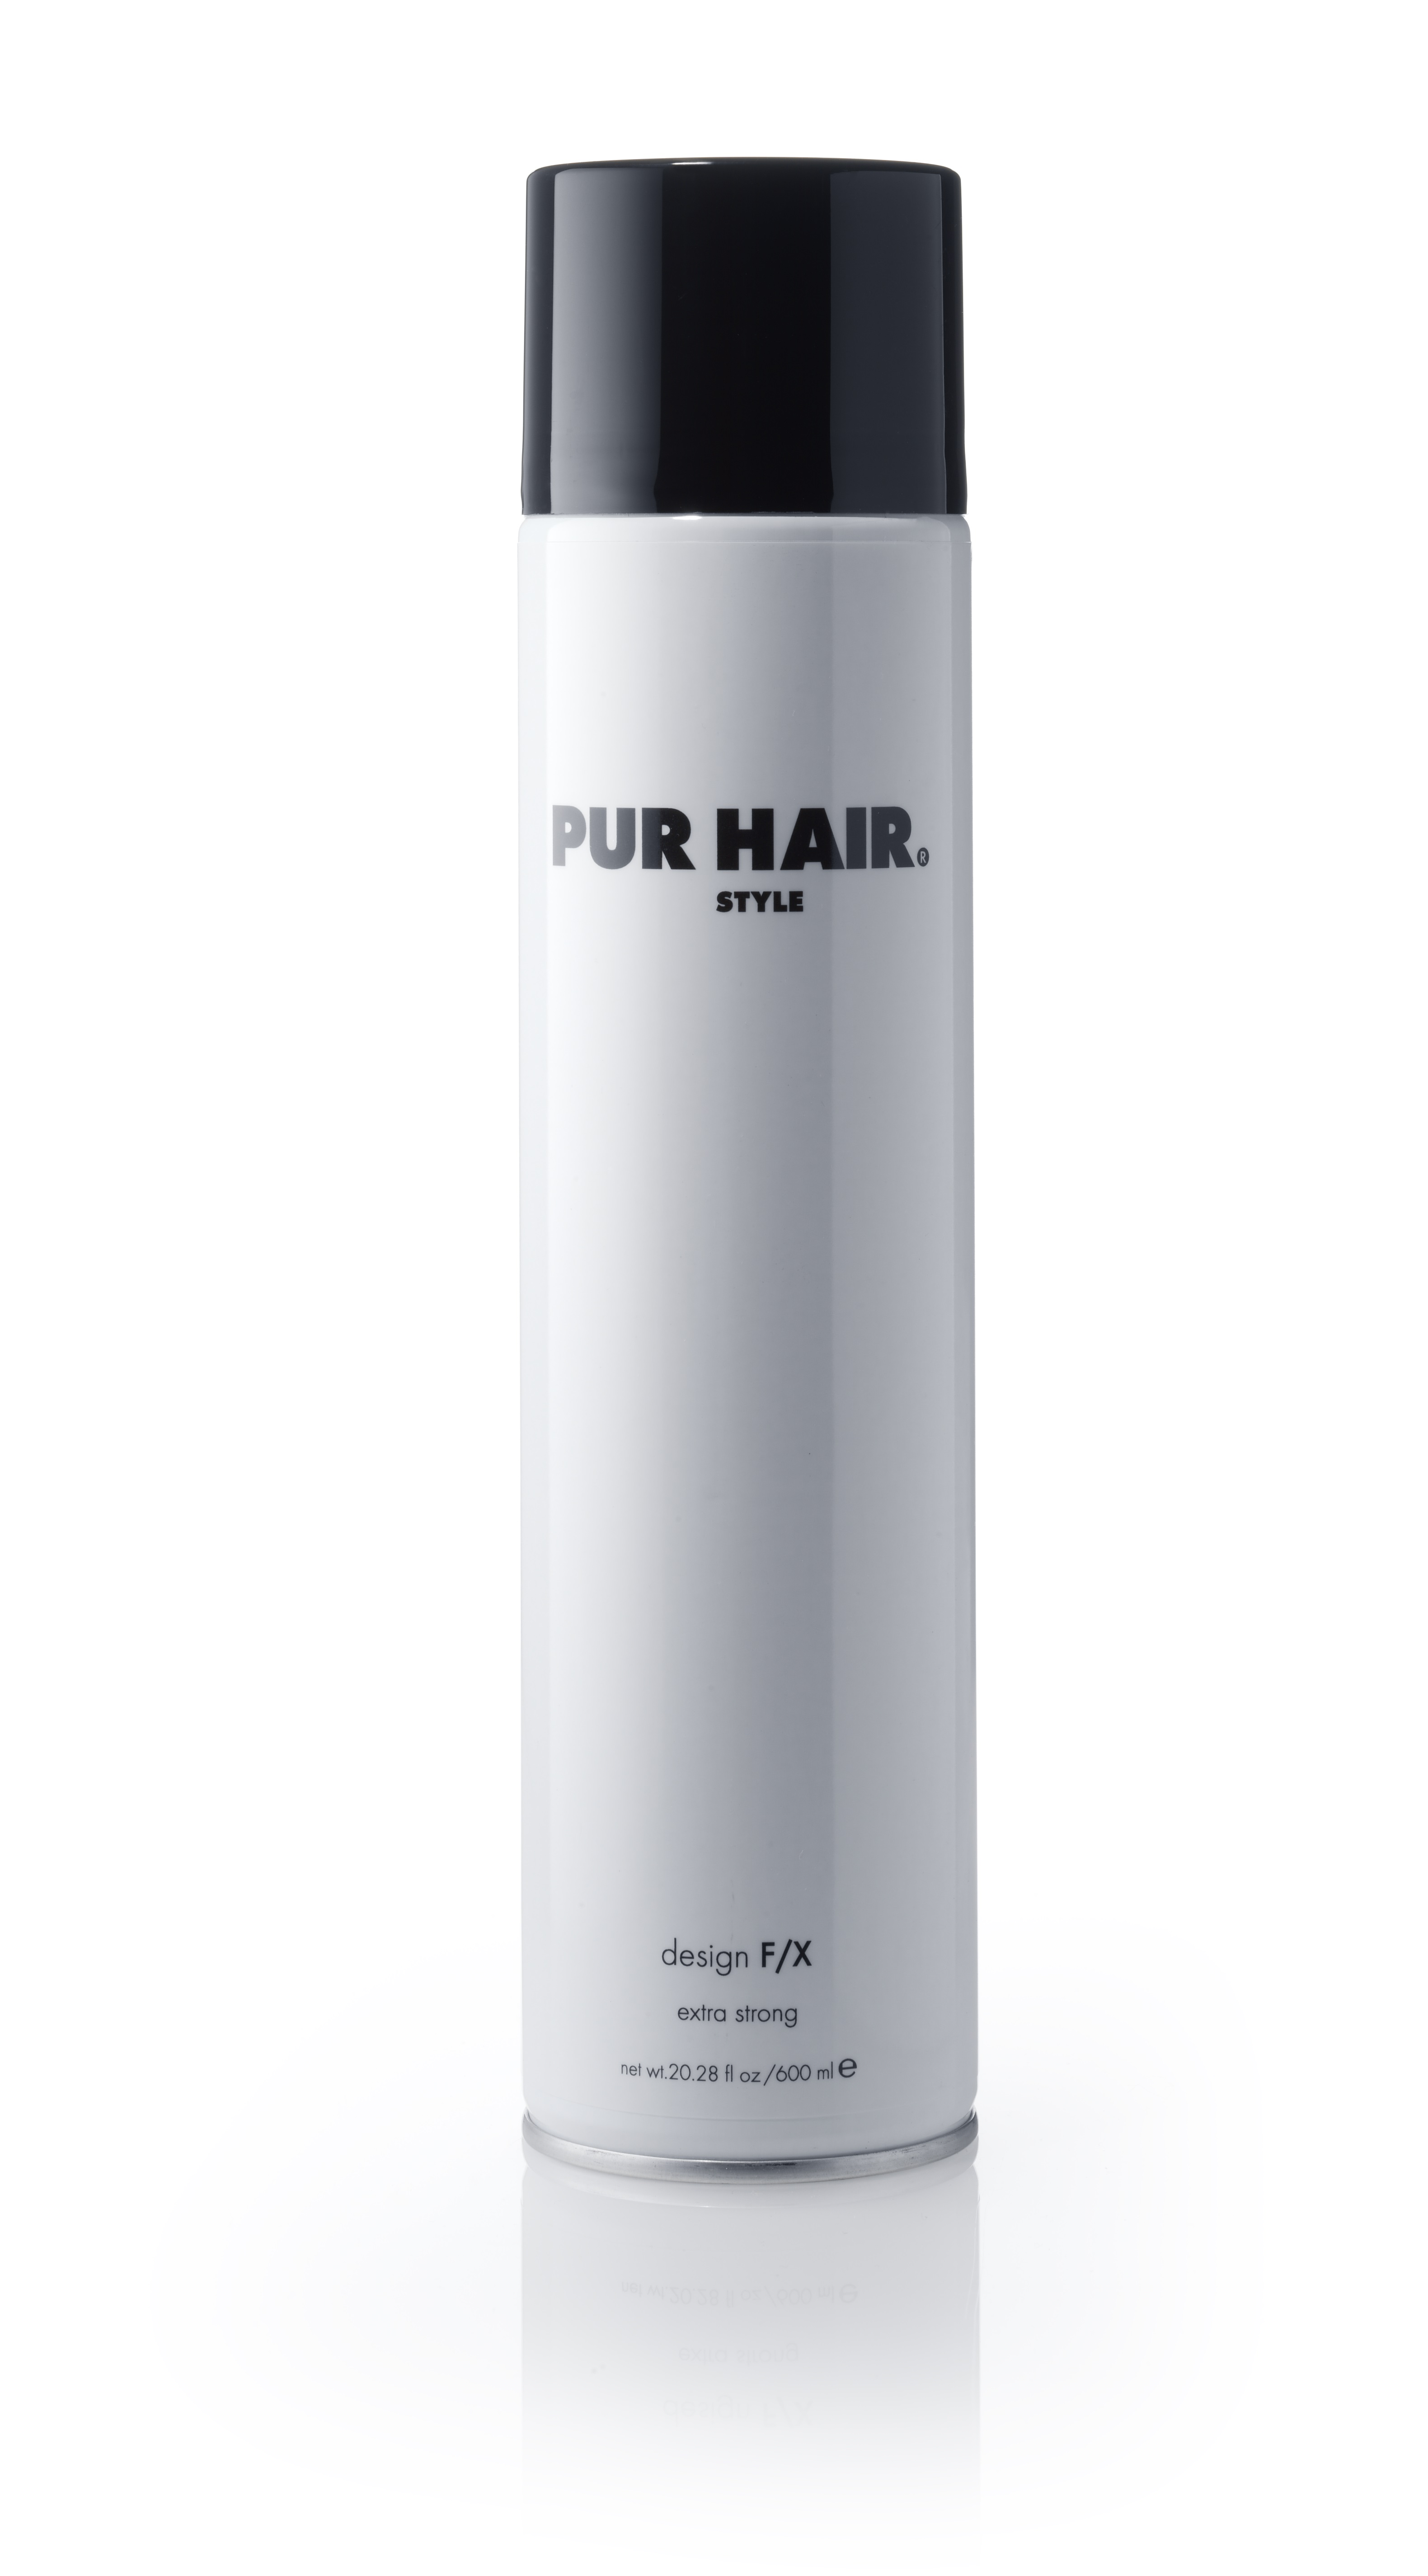 Design F/X Hairspray extra strong 600ml